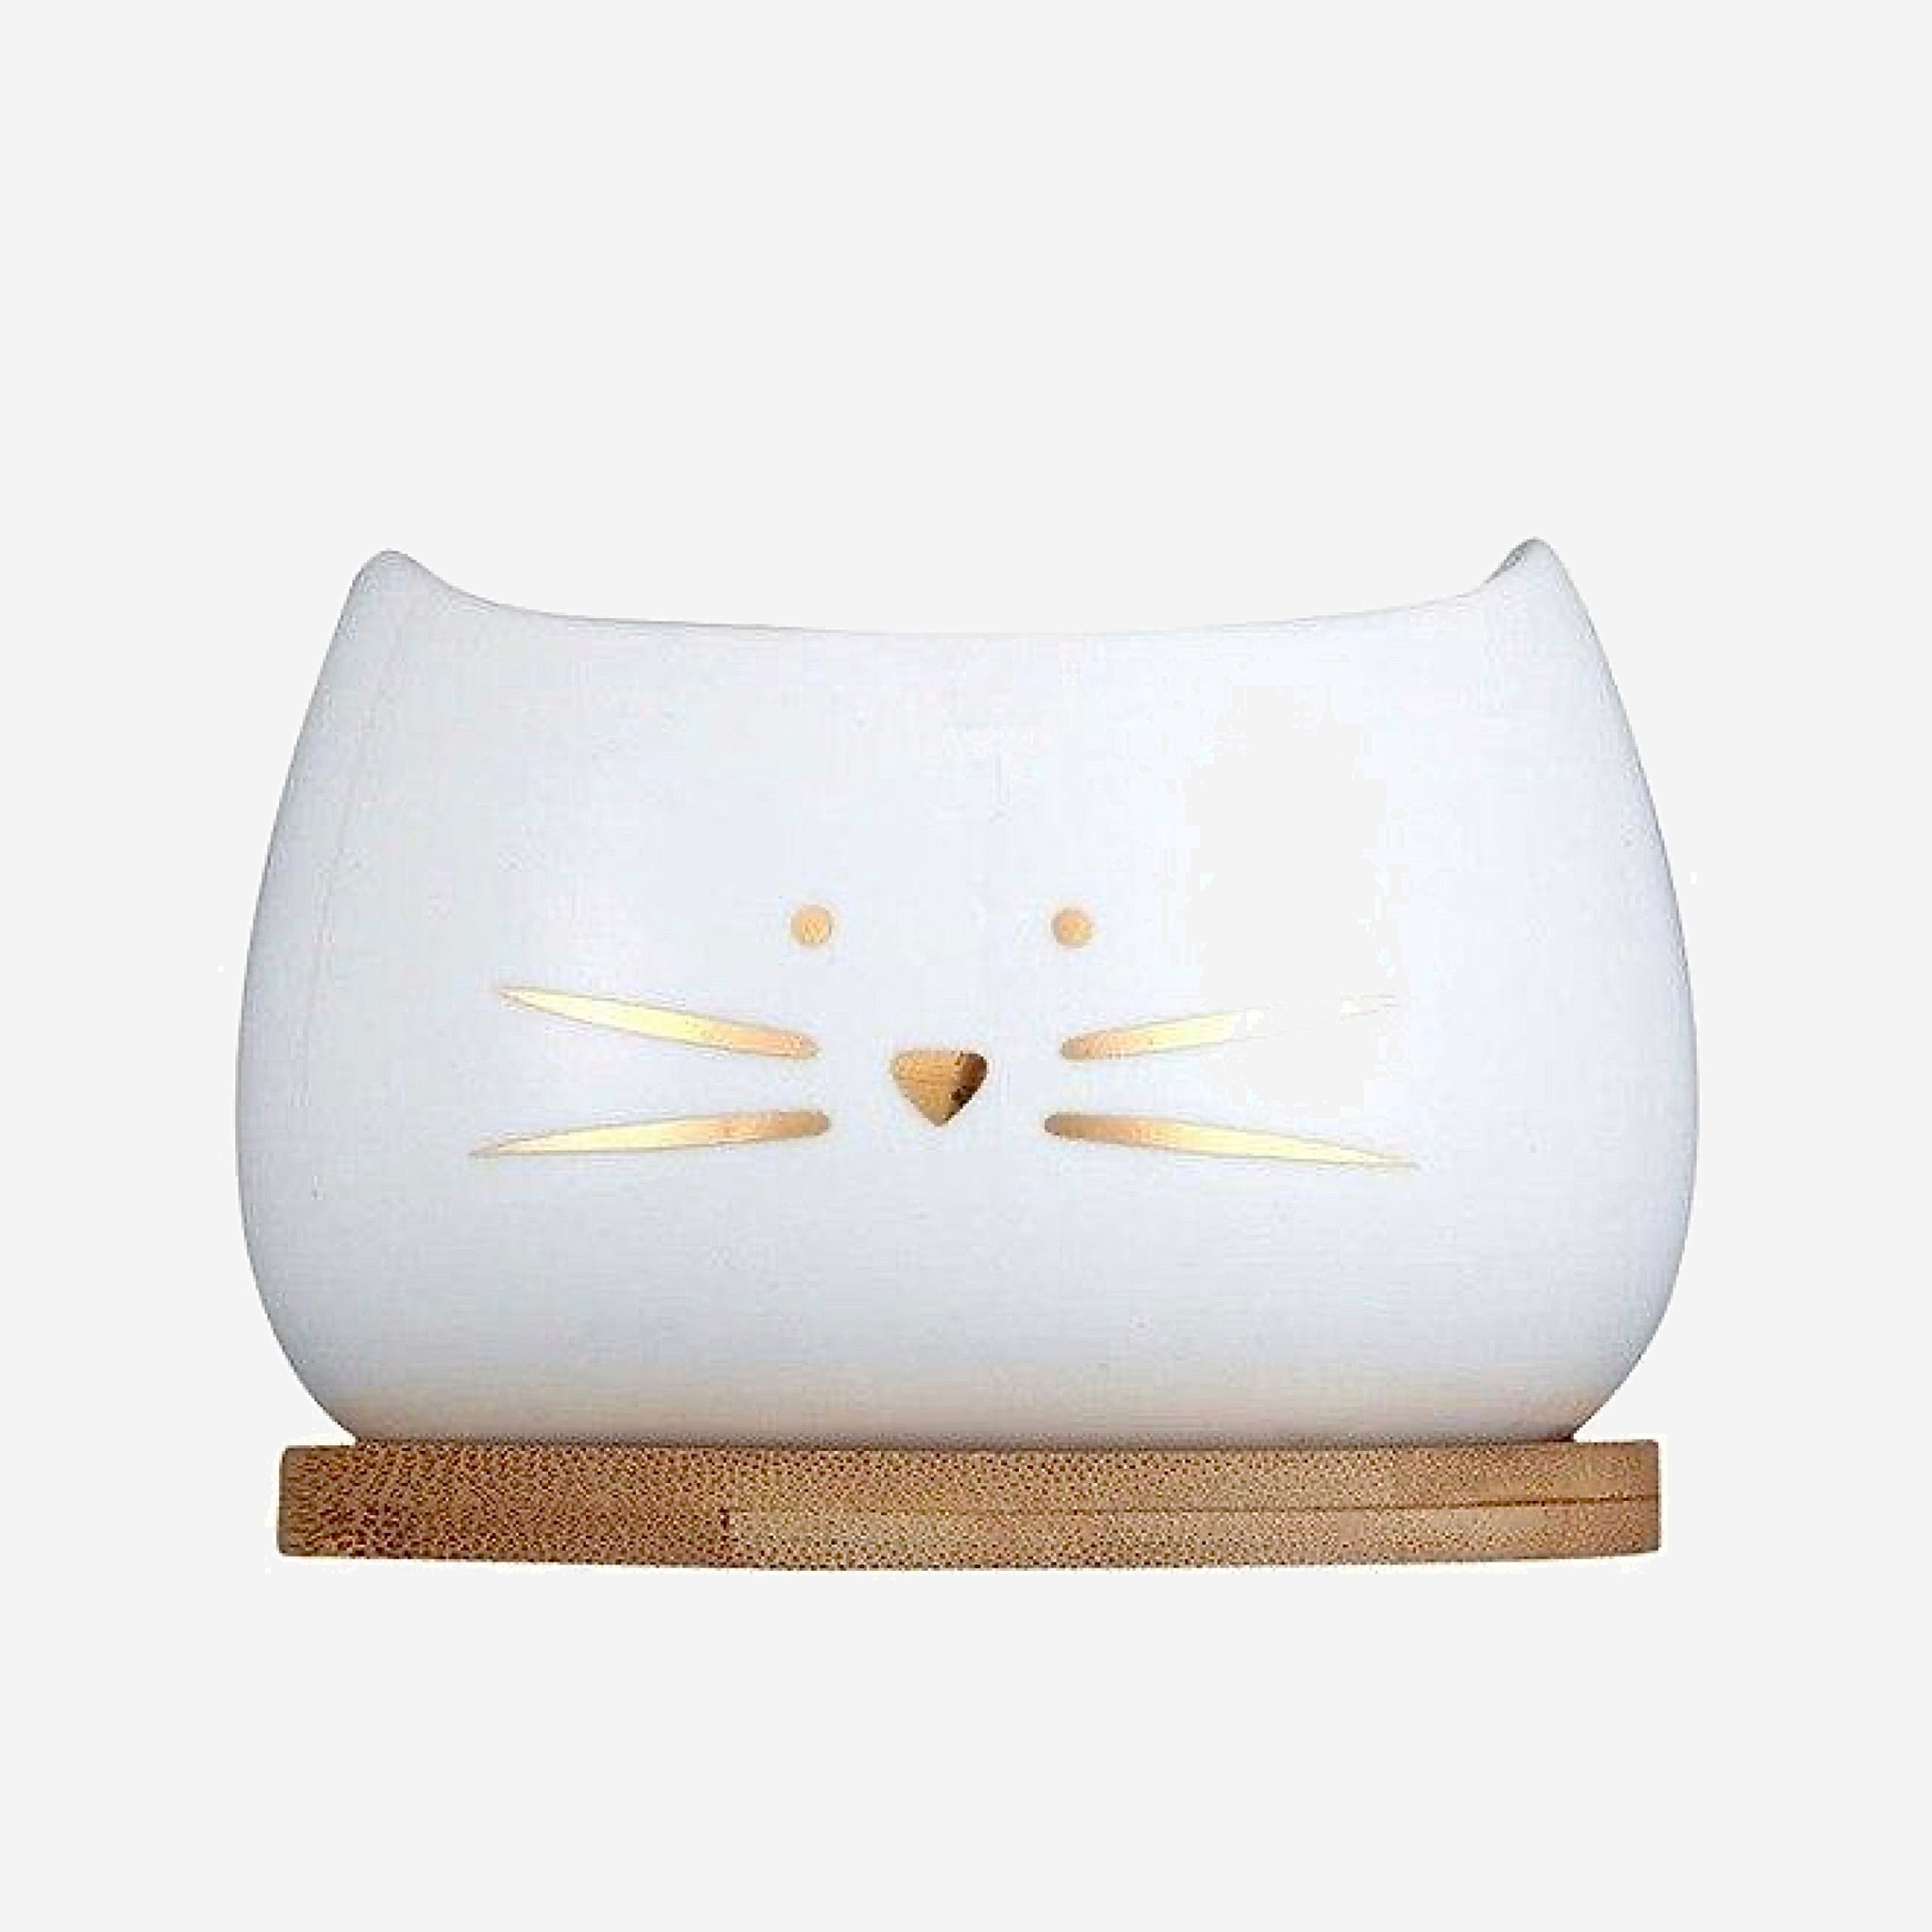 Cute Cat Face Planter Creative White Ceramic Succulent Flower Pot with Bamboo Tray Gardening Pots Trend Gold